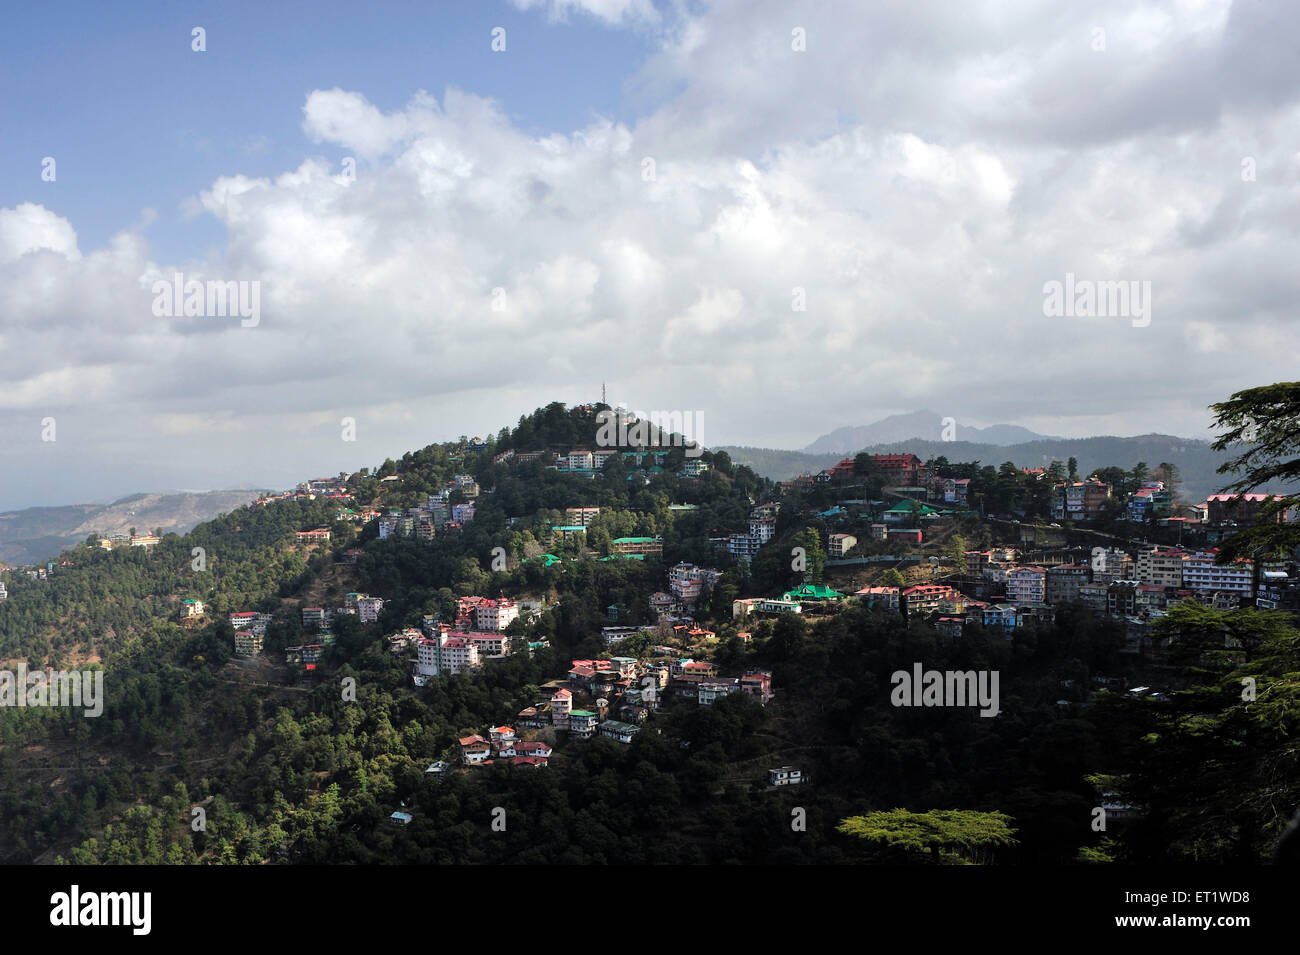 Aerial View of City in Shimla at Himachal Pradesh India Asia - Stock Image